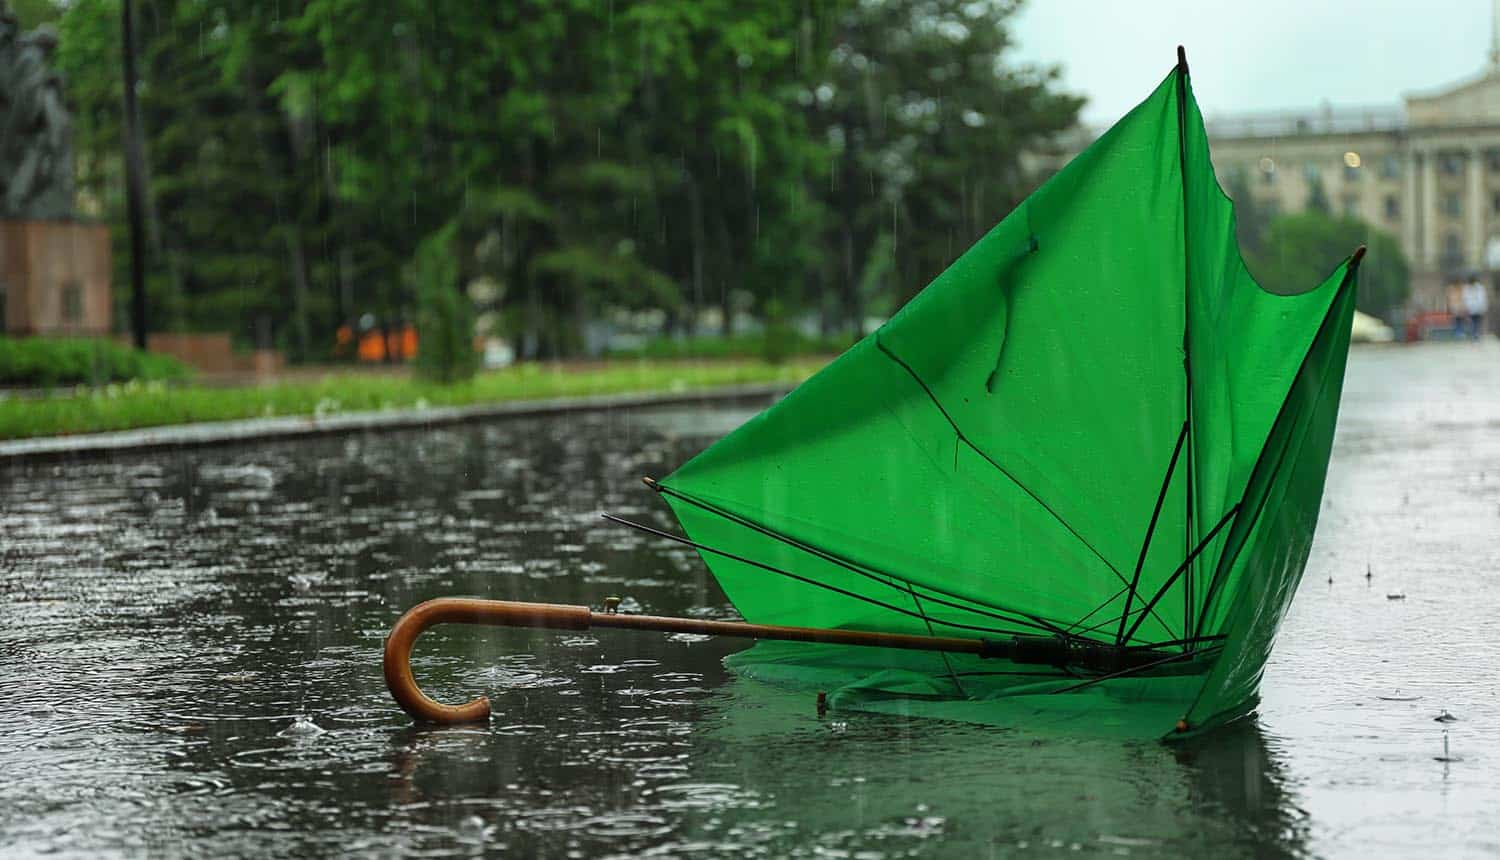 Broken green umbrella in park on rainy day showing increased cyber reinsurance rates due to ransomware attacks